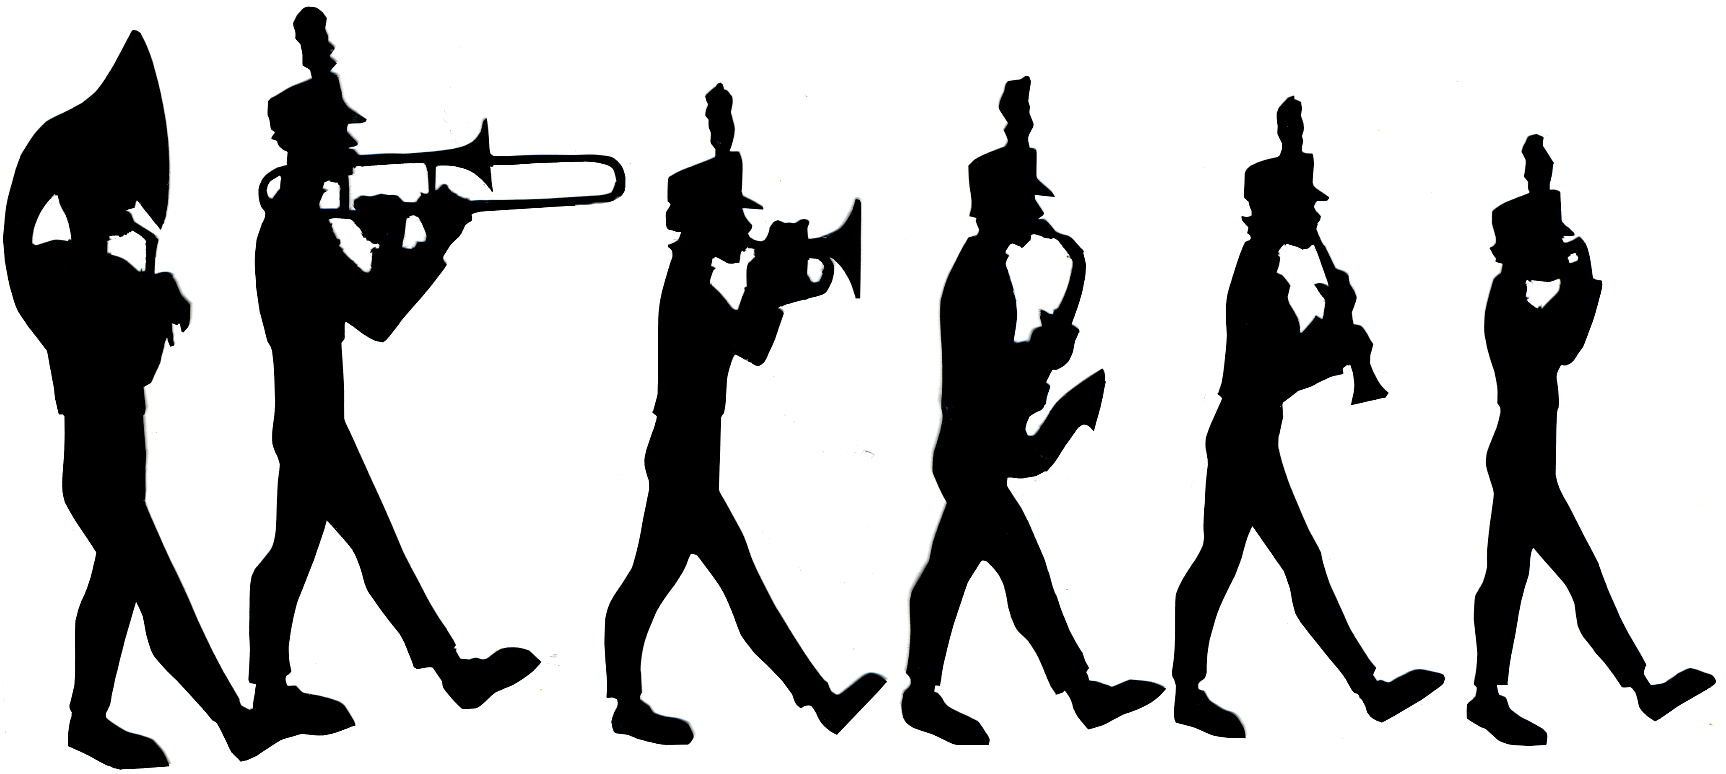 marching band clipart silhouette at getdrawings com free for rh getdrawings com marching band clip art silhouette marching band drum clipart